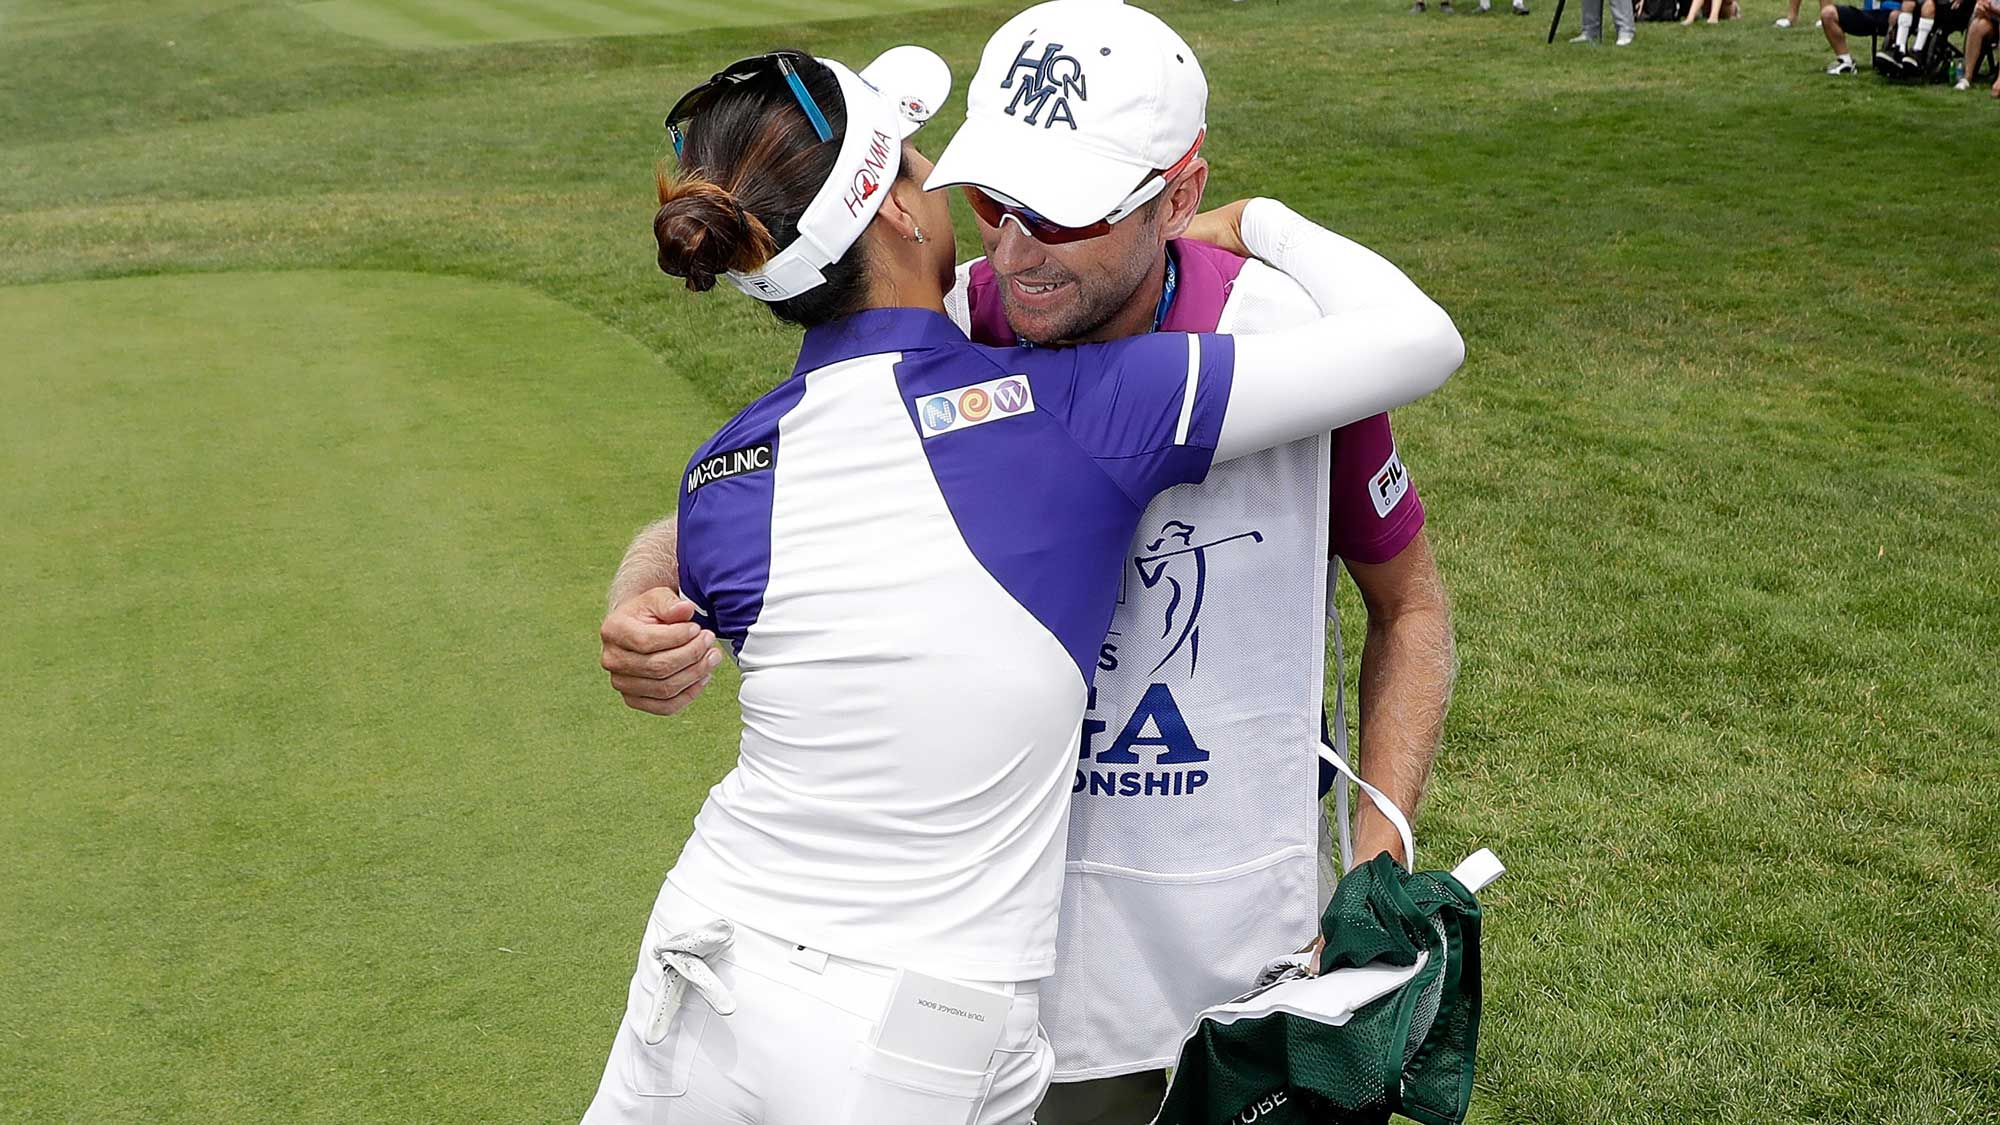 So Yeon Ryu of South Korea hugs her caddie, Tom Watson, after giving him a caddie bib signifying her #1 world ranking during the first round of the 2017 KPMG PGA Championship